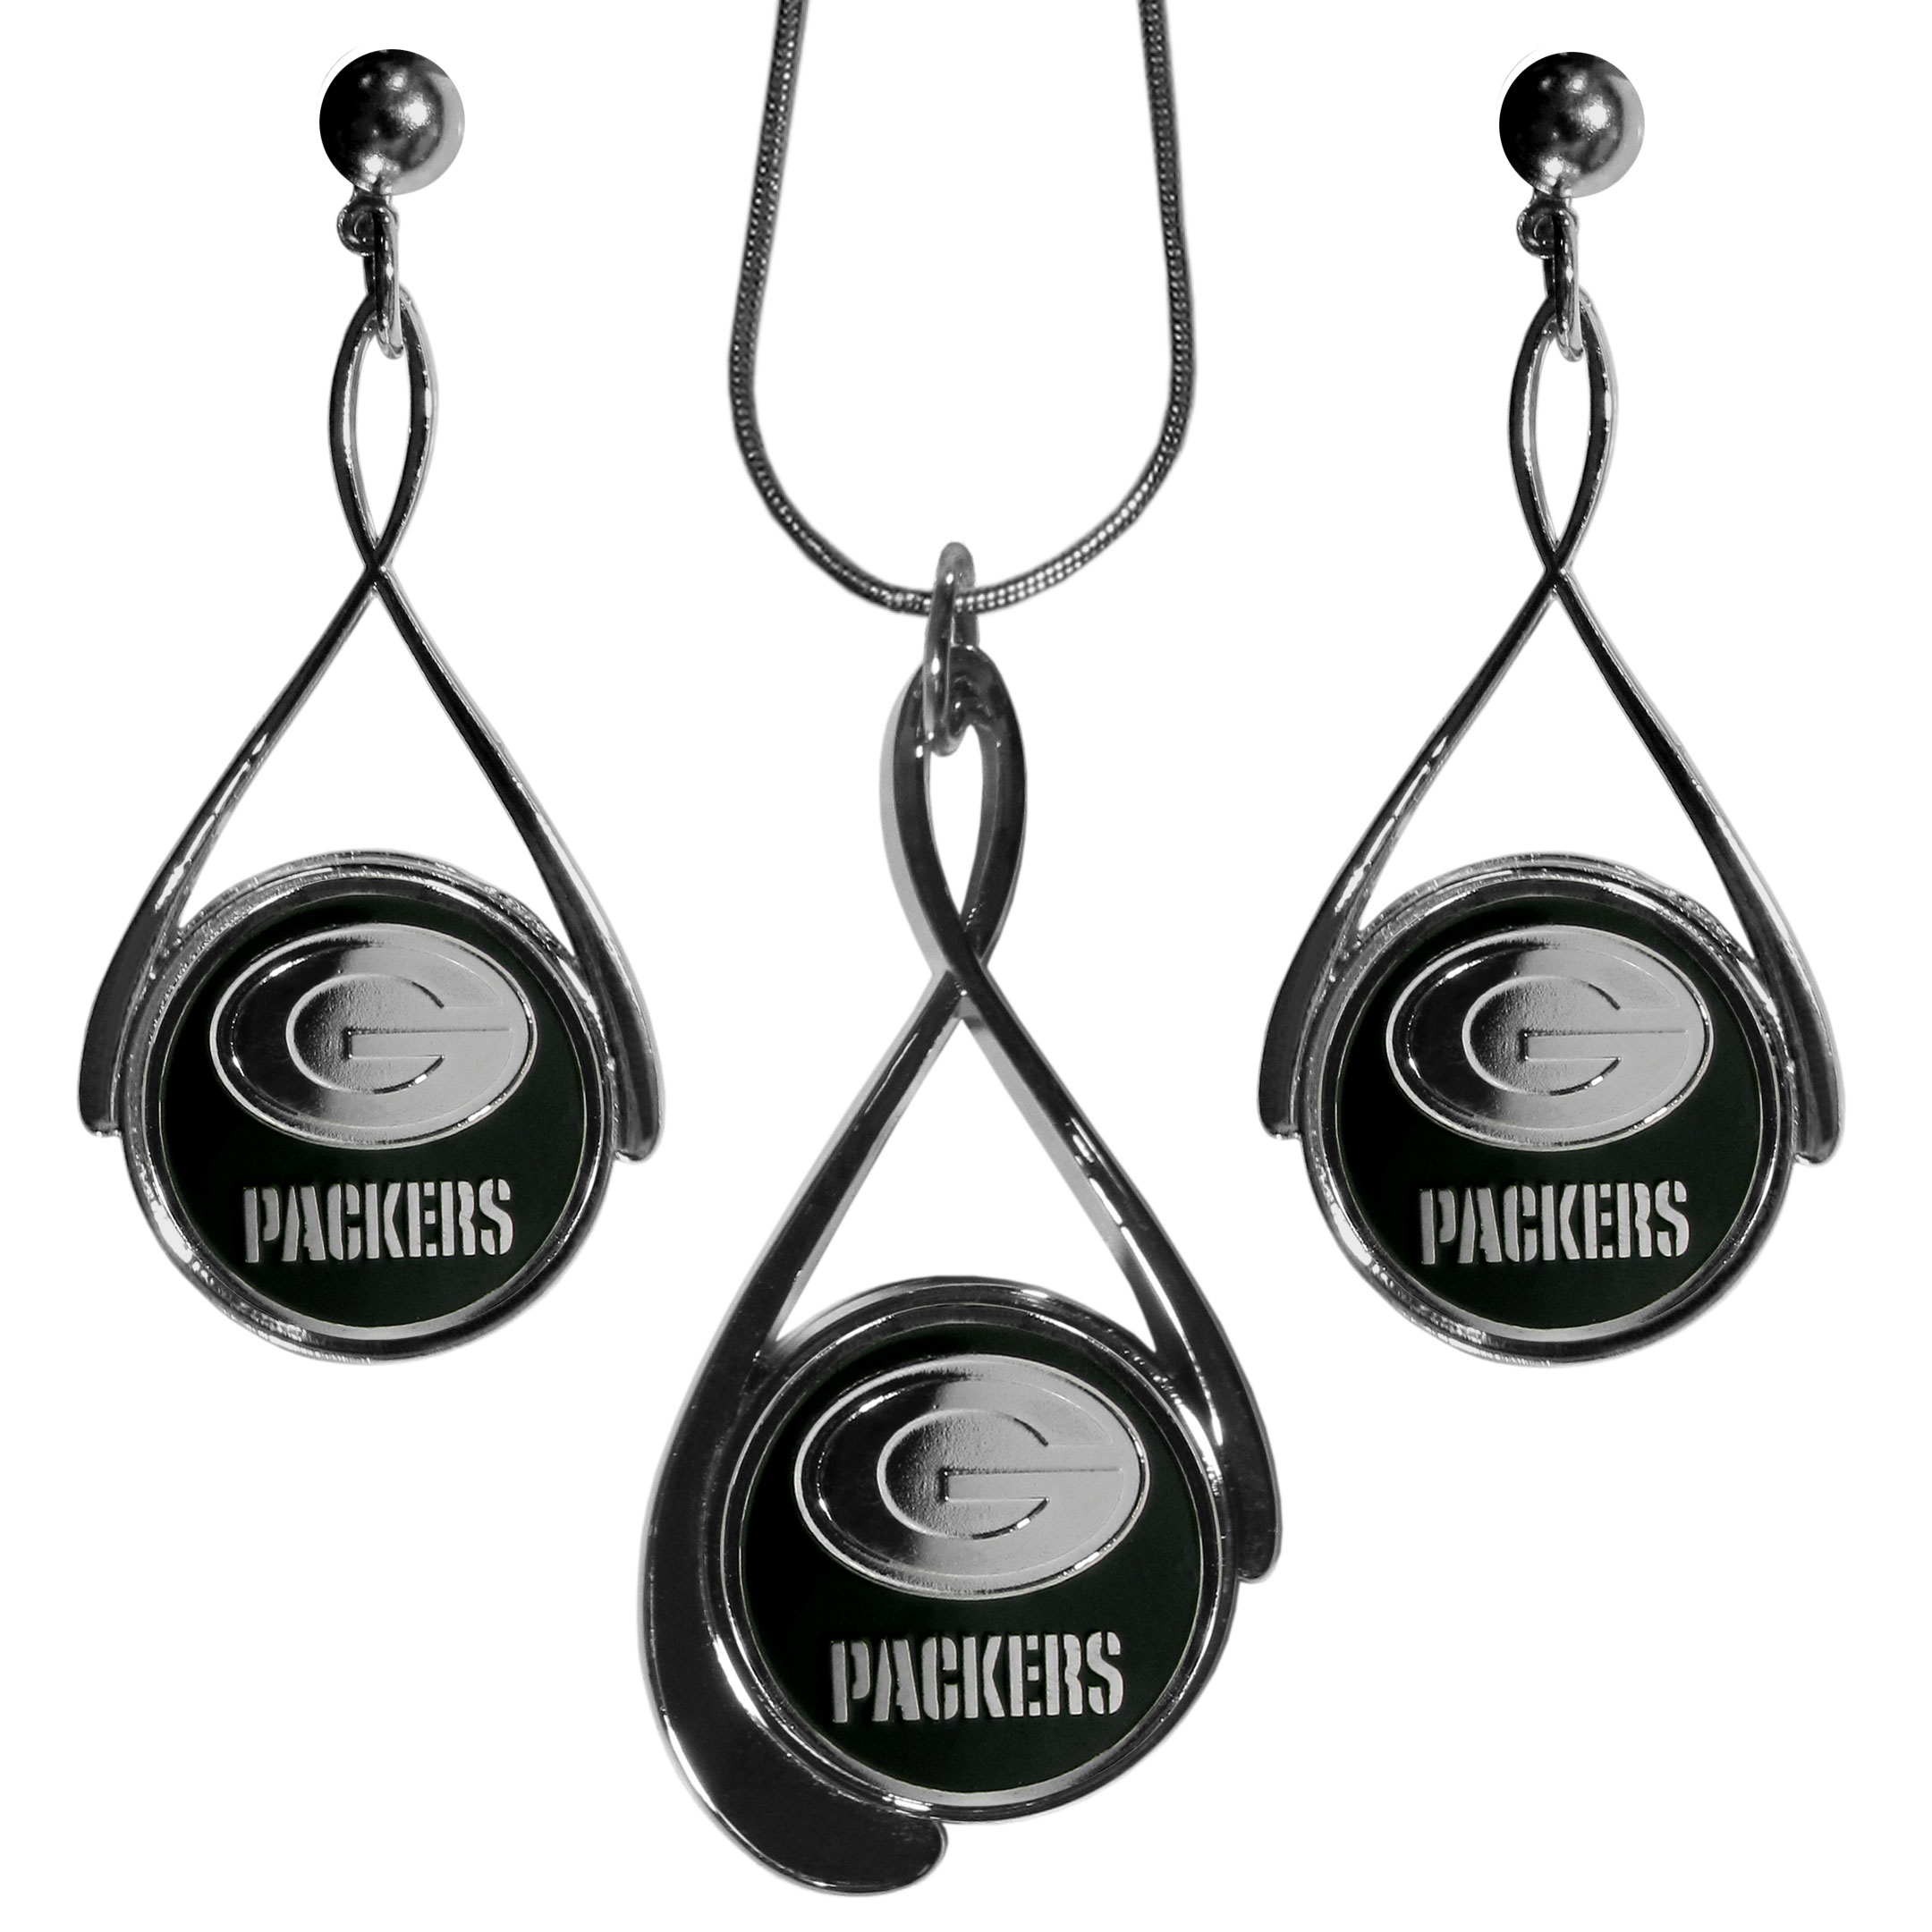 Green Bay Packers Tear Drop Jewelry Set - Our Green Bay Packers tear drop earrings and necklace set is a sporty twist on the classic tear drop style. The high polish dangle earrings feature the team logo in raised metal against the primary team color inset into the 2 inch tear drop setting paired with a beautiful matching necklace with a 18 inch snake chain with 2 inch extendor. The earrings have hypoallergenic stud posts.